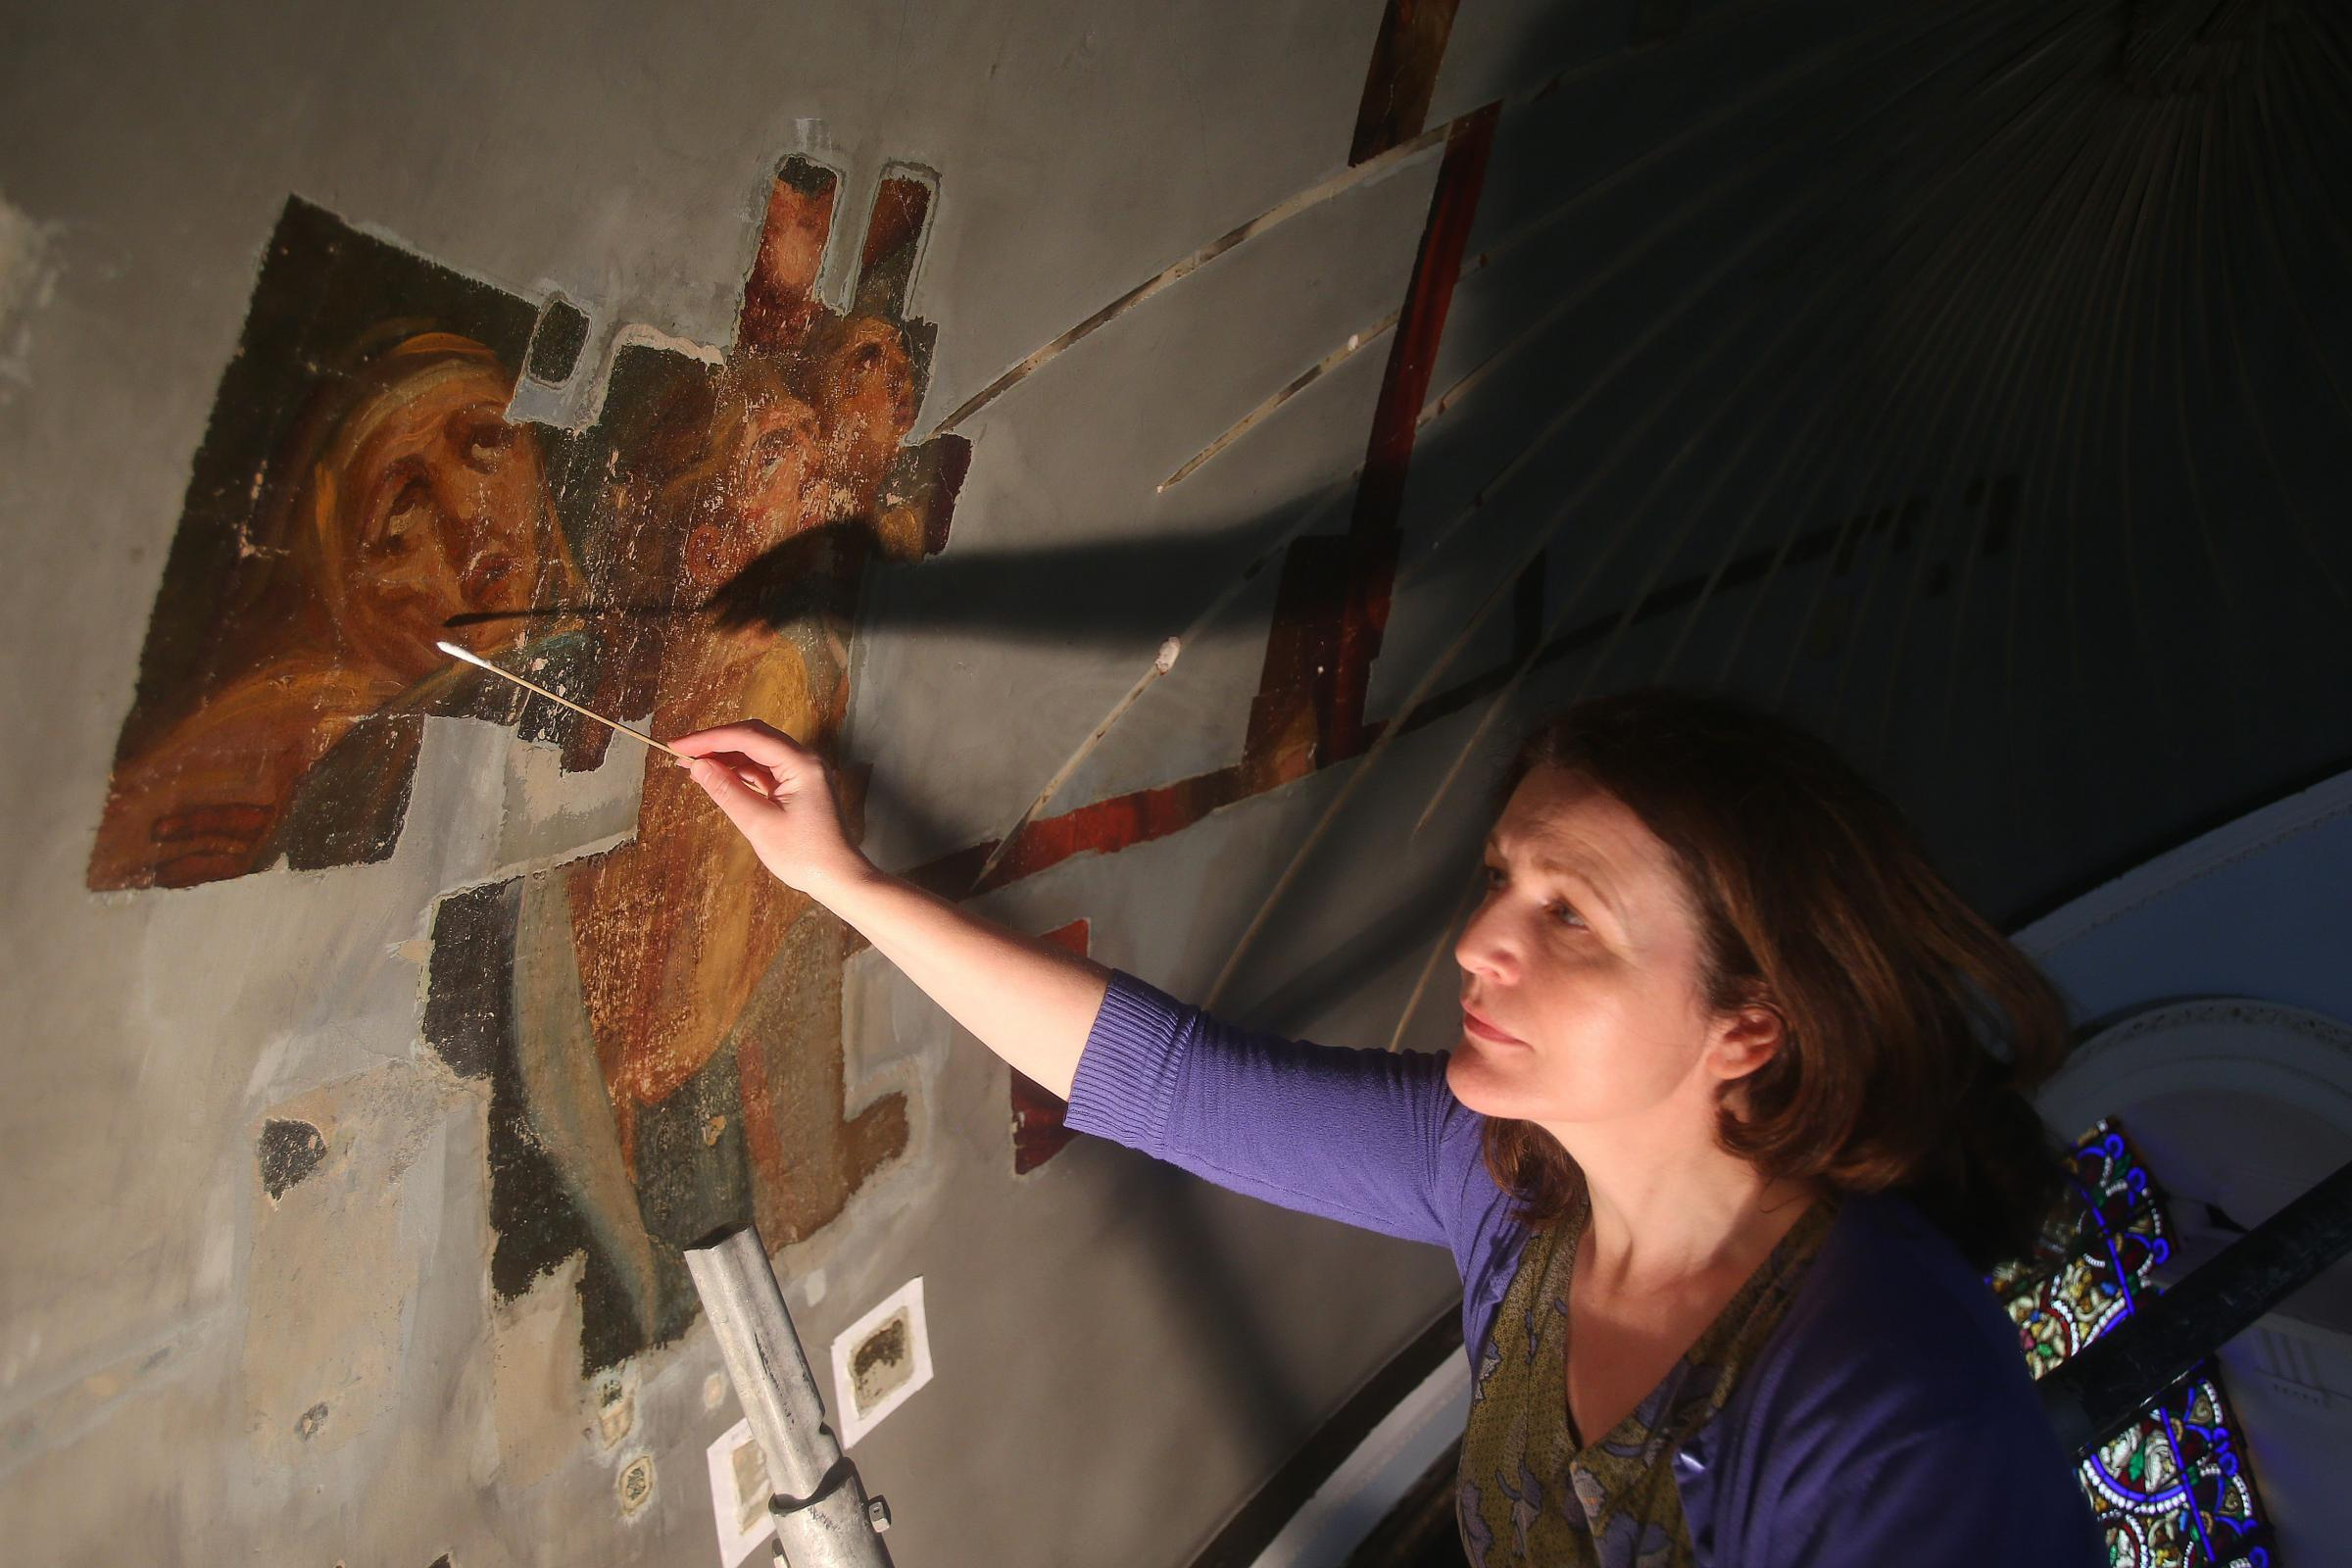 Art conservator Nicola Grimaldi of Northumbria University works on the Ascension of the Lord by Alexander Runciman at St Patrick's in Edinburgh. STY MILLERPicture: Gordon Terris/The Herald